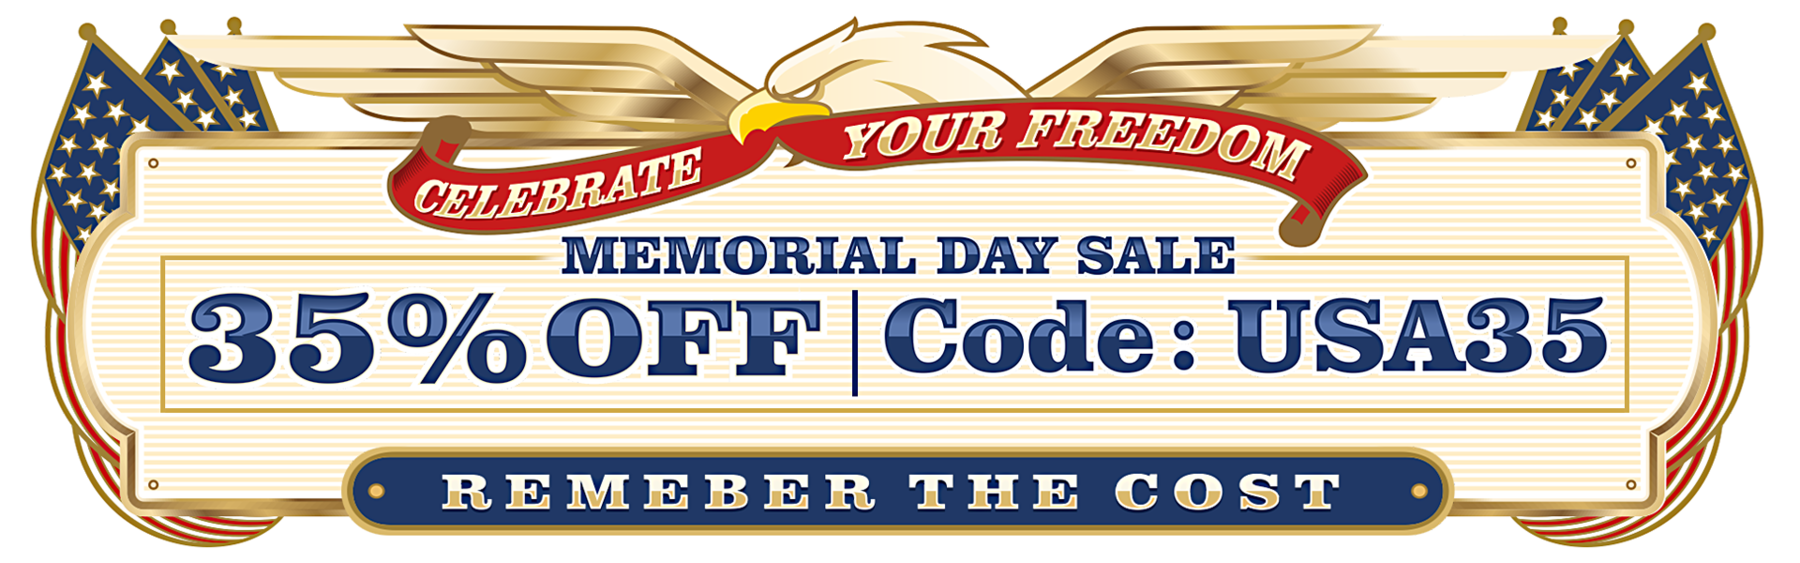 Memorial Day Sale: 35% OFF ALL SEEDS!